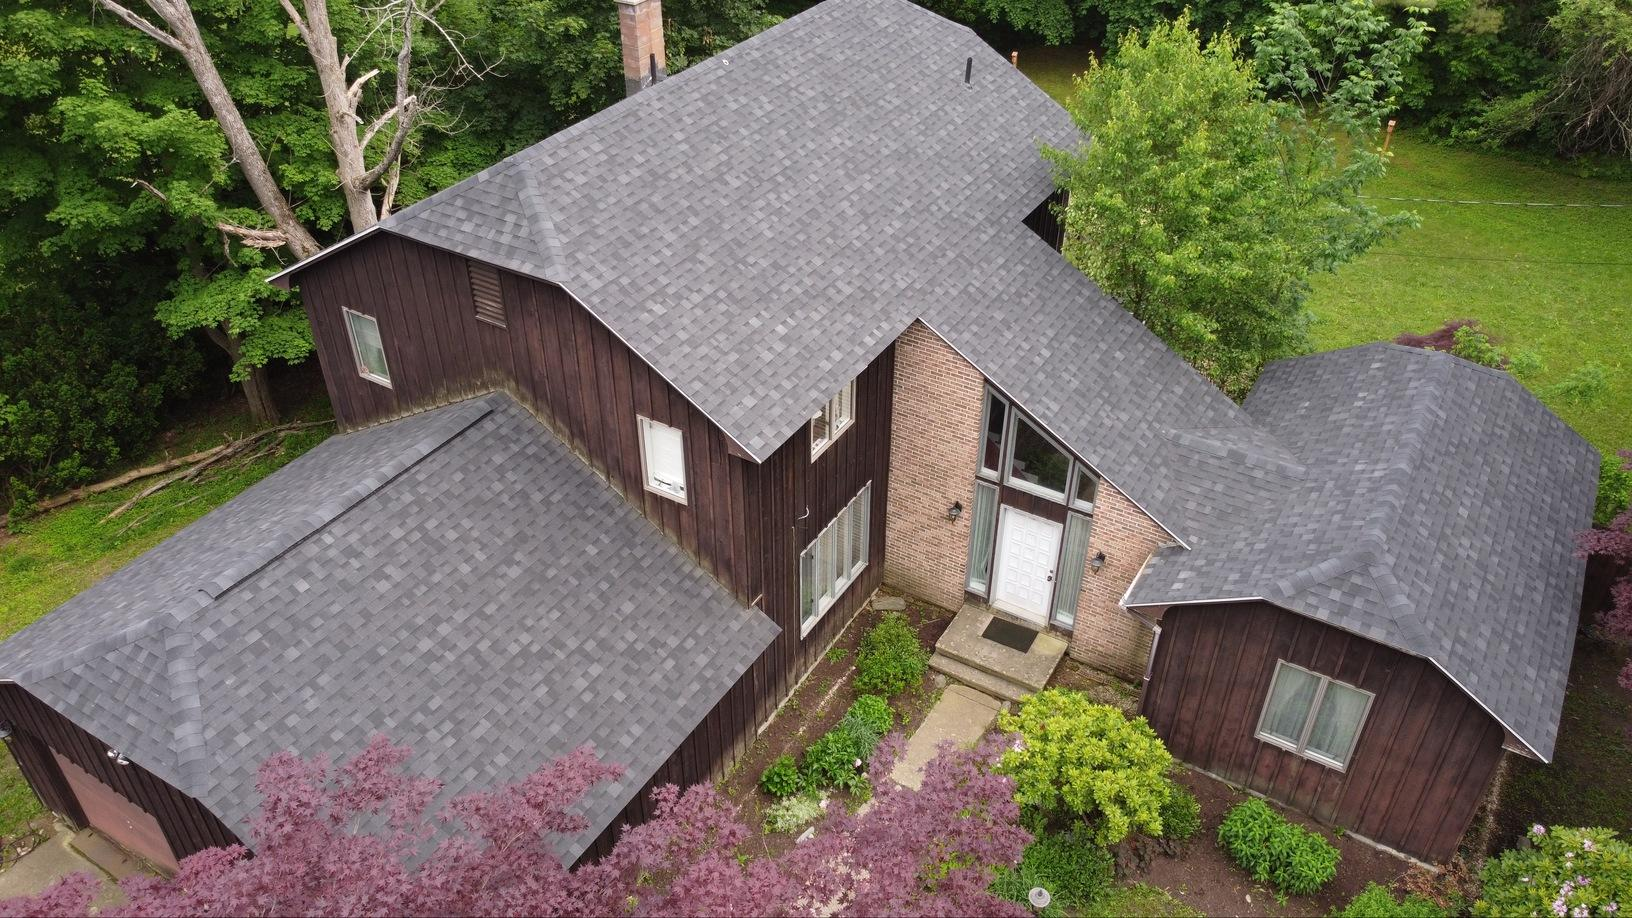 Lenox, MA Roof Replacement IKO Dynasty Granite Black Shingles - After Photo